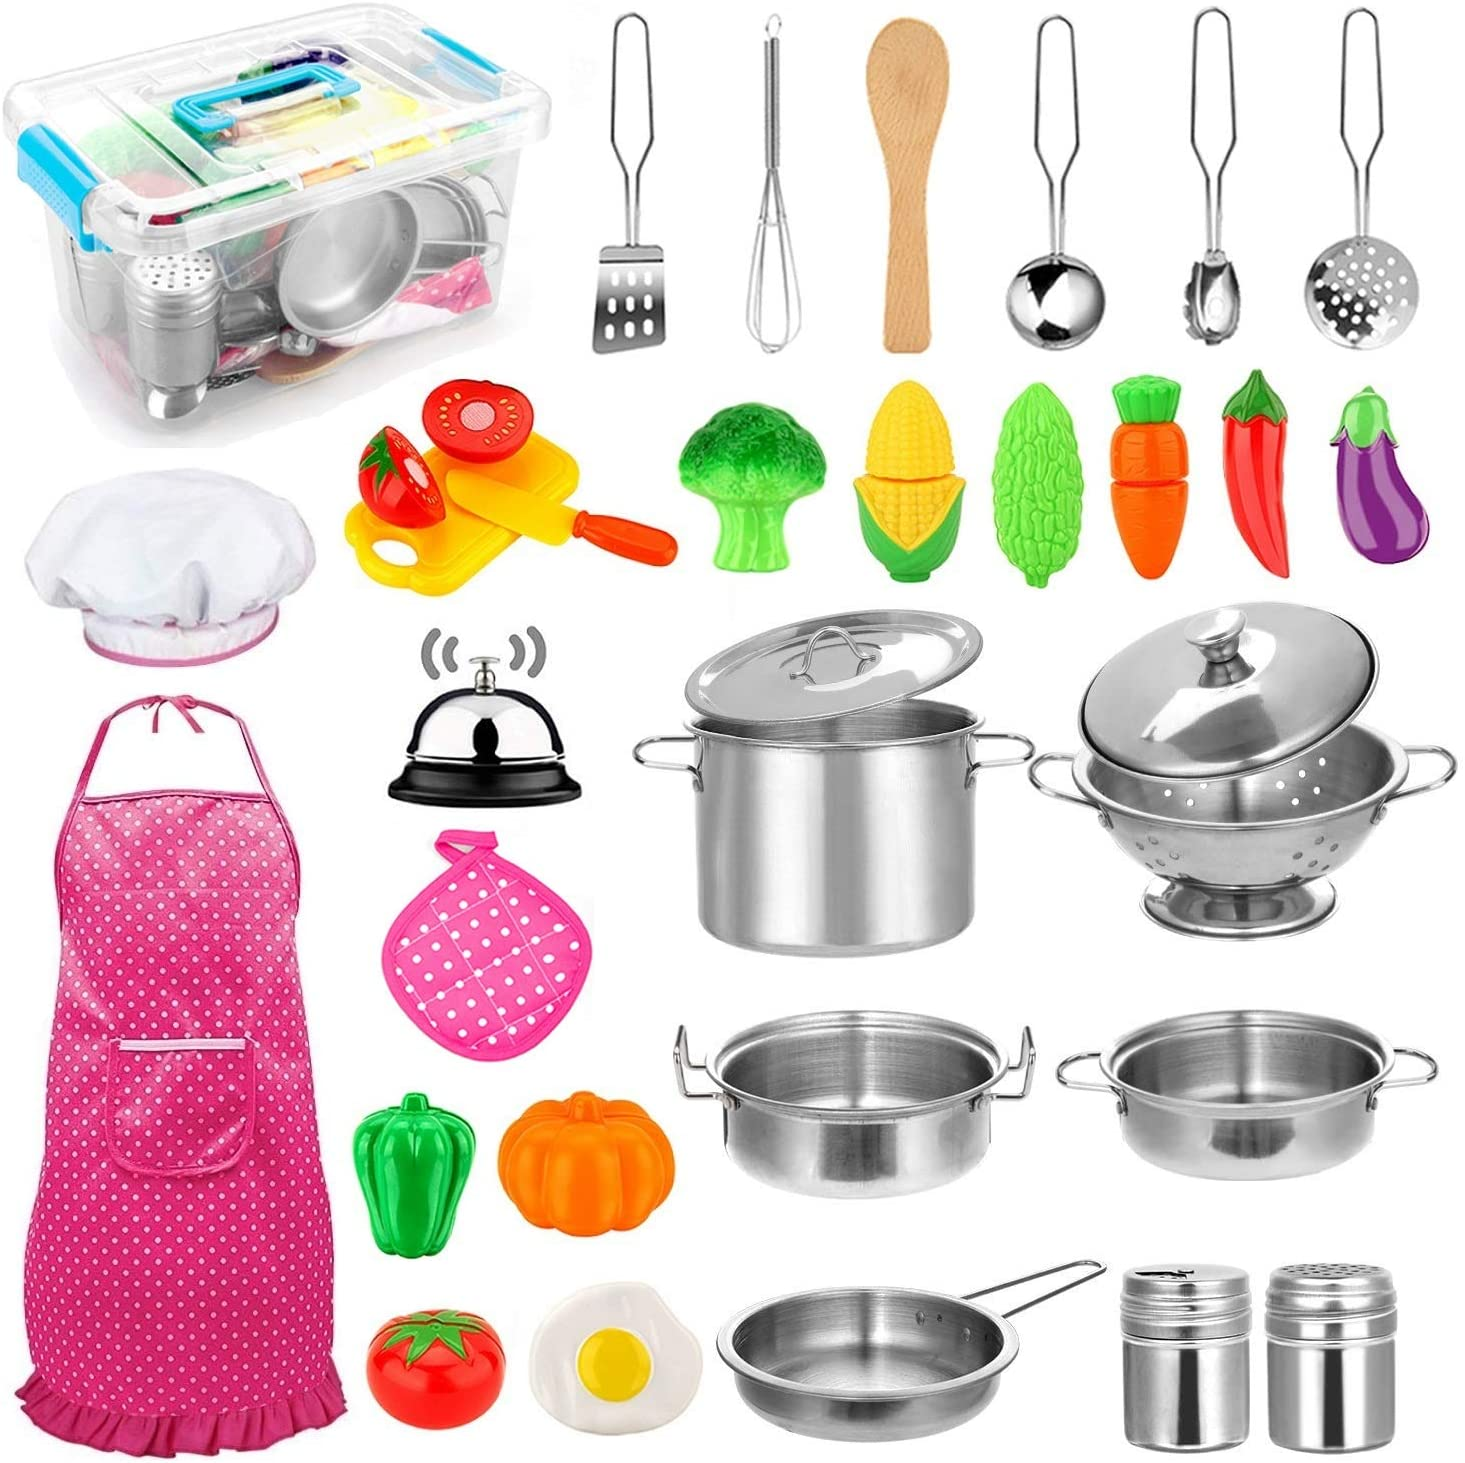 Amazon Com 30pcs Kids Kitchen Pretend Play Toys Toy Kitchen Set With Stainless Steel Cooking Utensils Cookware Pots And Pans Set Healthy Vegetables Knife Little Chef For Toddlers Children Boys Girls Toys